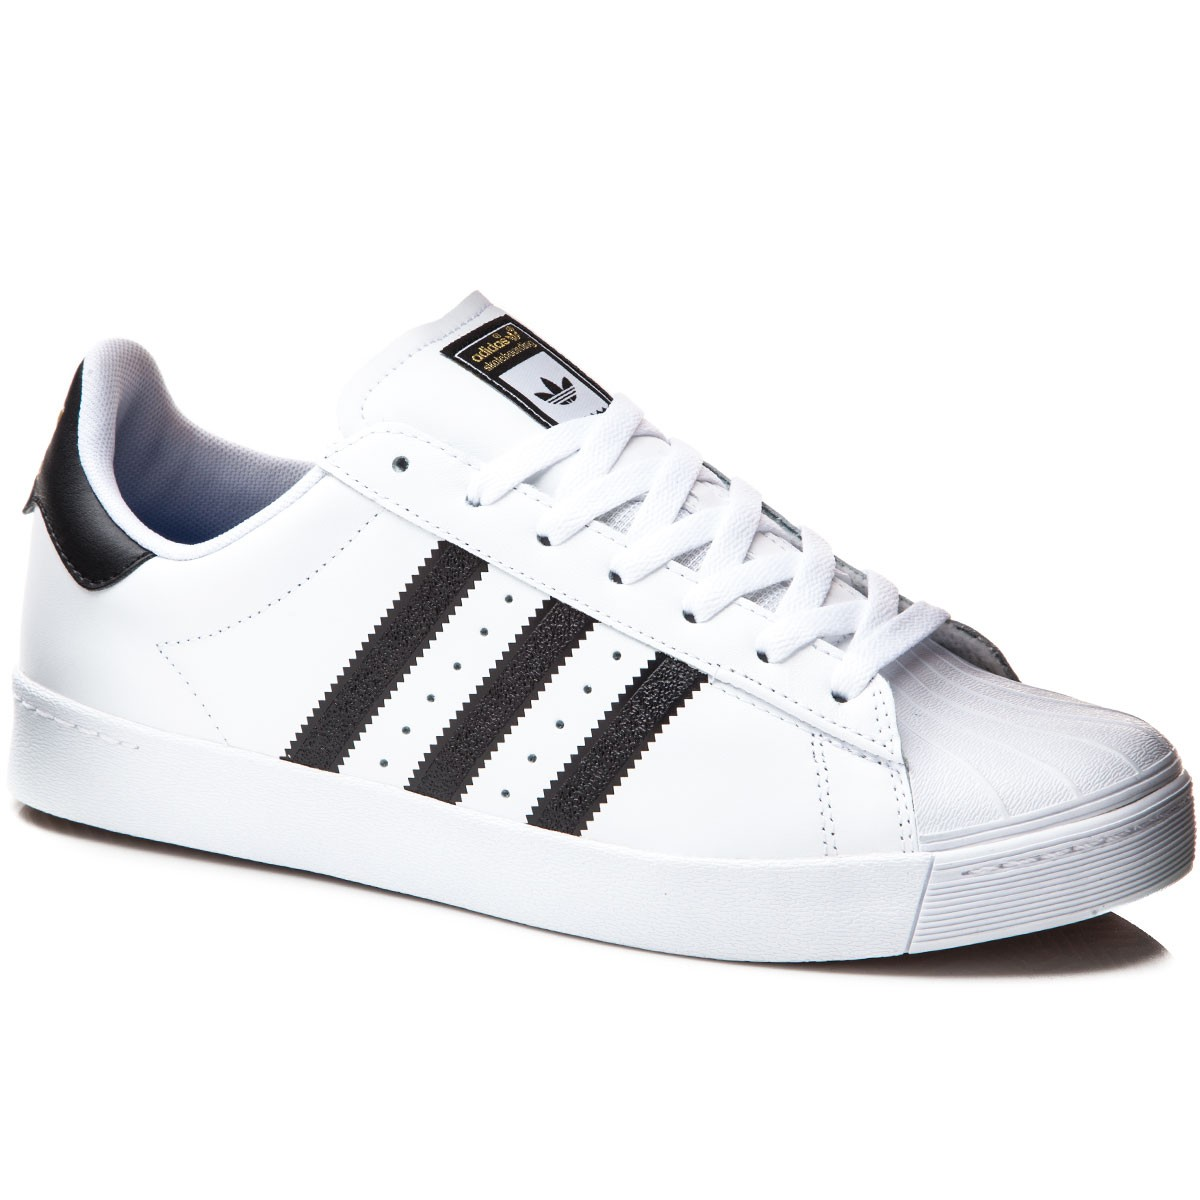 Cheap Adidas Originals on Twitter: